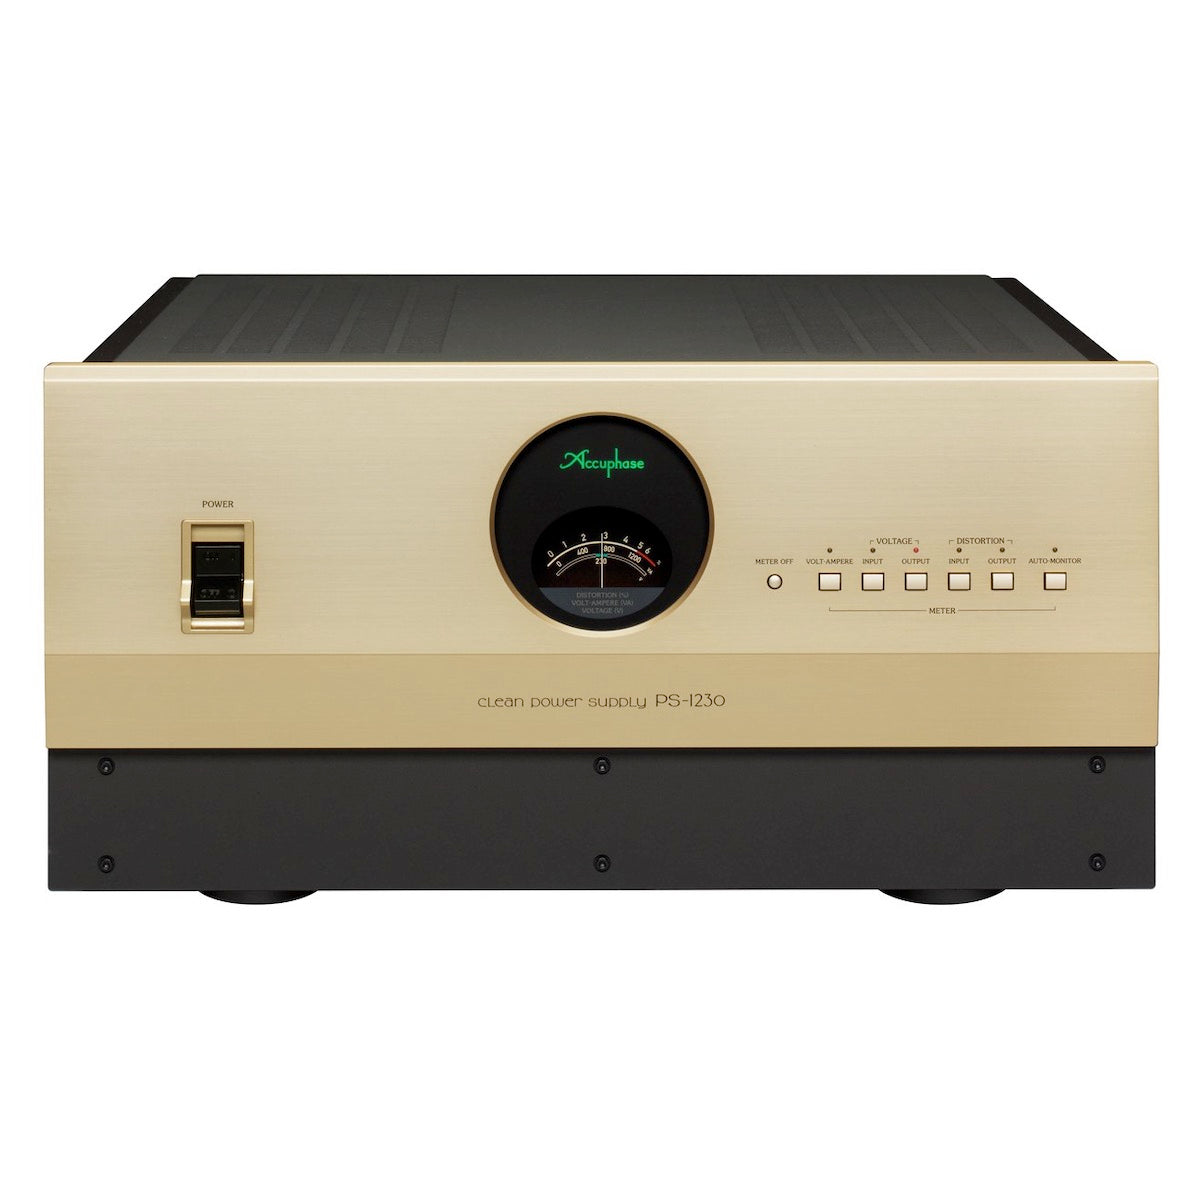 Accuphase T-1200 - DDS FM Stereo Tuner, Accuphase Laboratory, Inc., DDS Stereo Tuner - AVStore.in